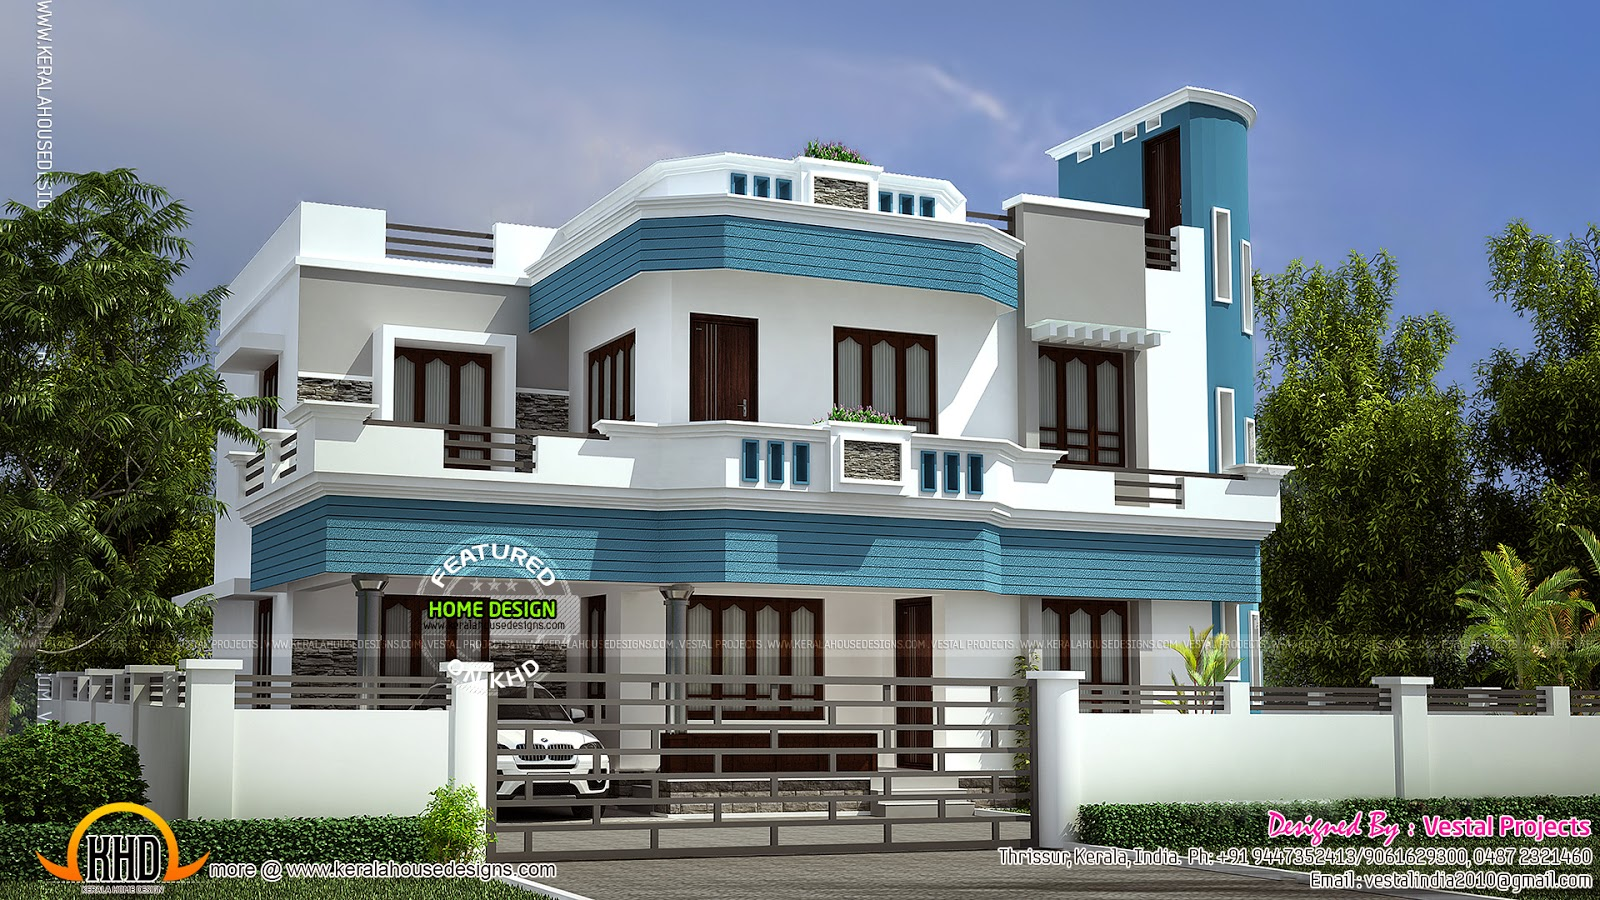 Awesome house by vestal projects kerala home design and for Awesome home designs